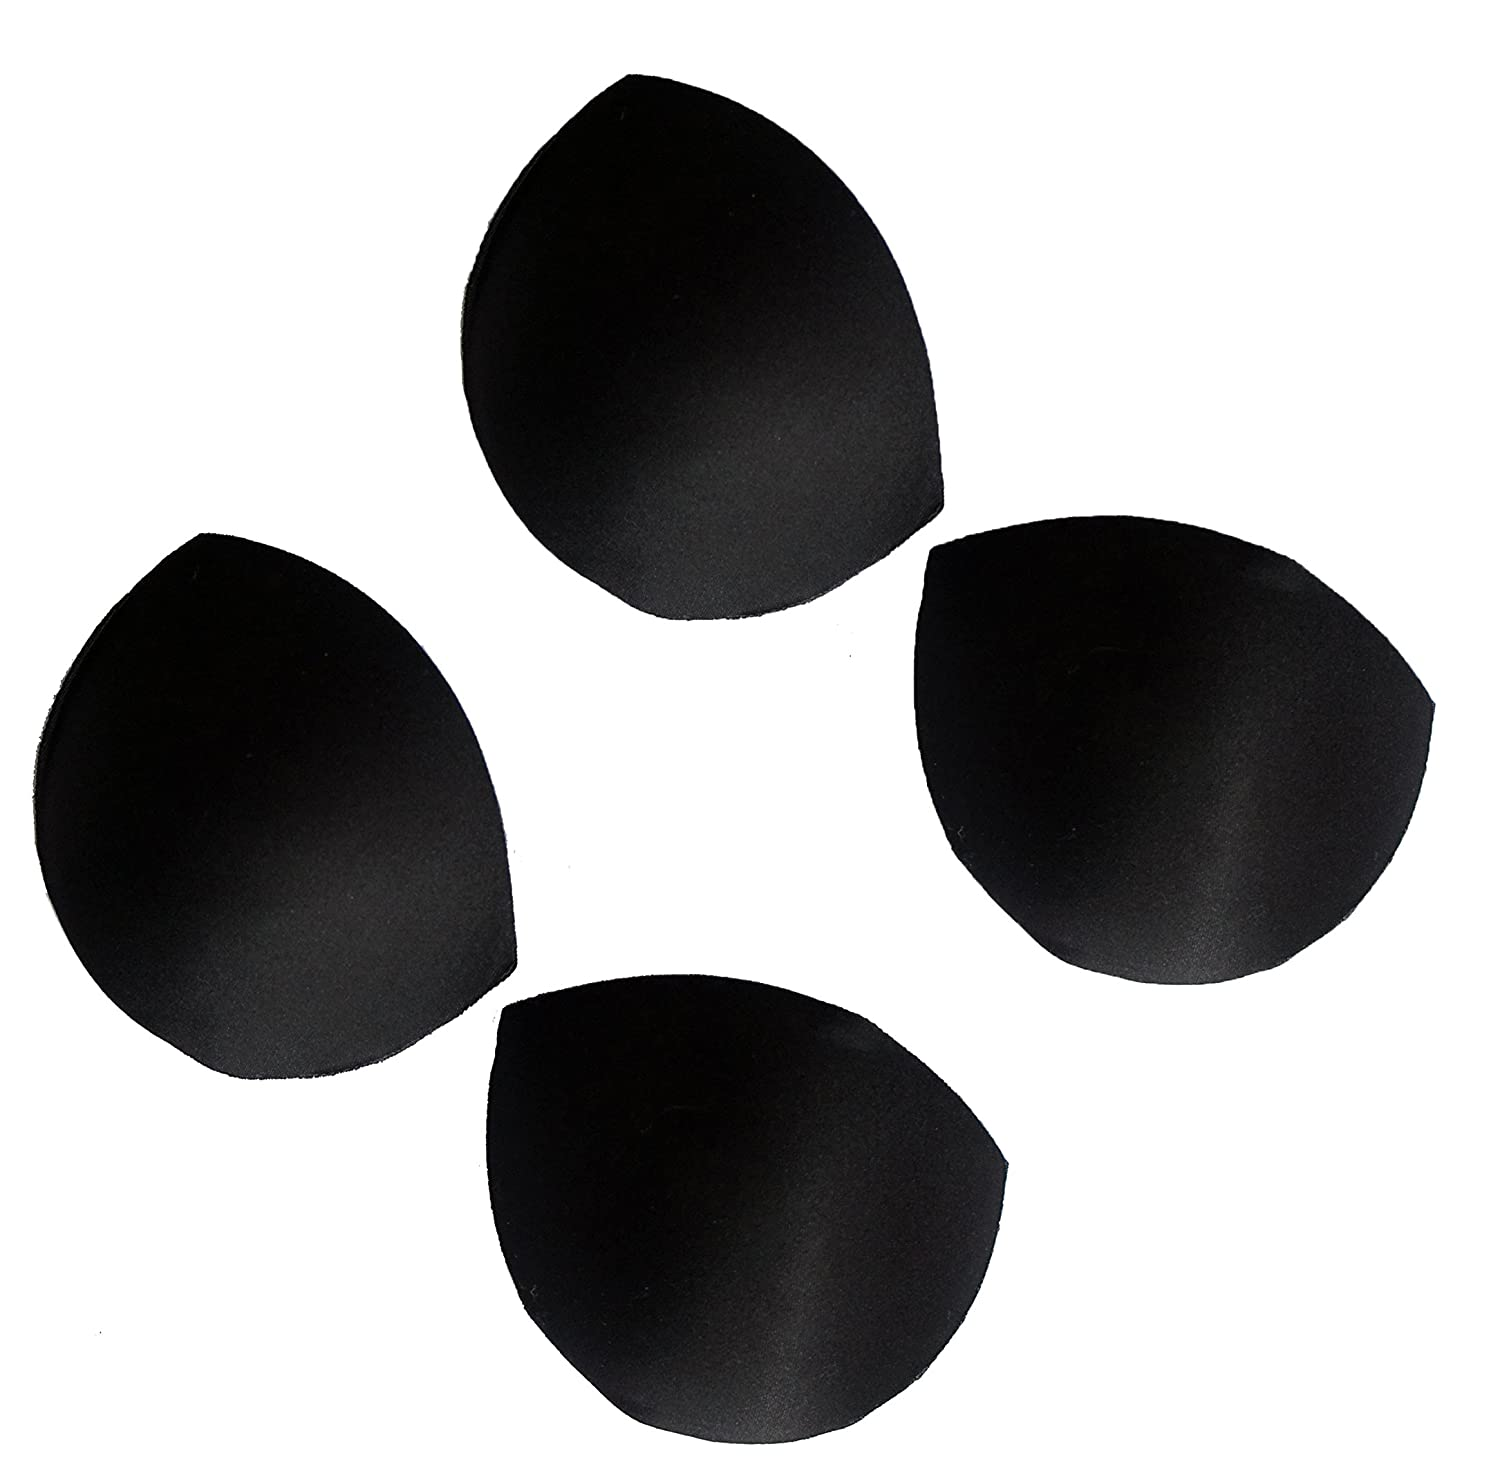 Hand® 004 XL C-D Cup Replacement Black Bra Cups 200 x 150 mm - 2 Pairs Well Made Tools